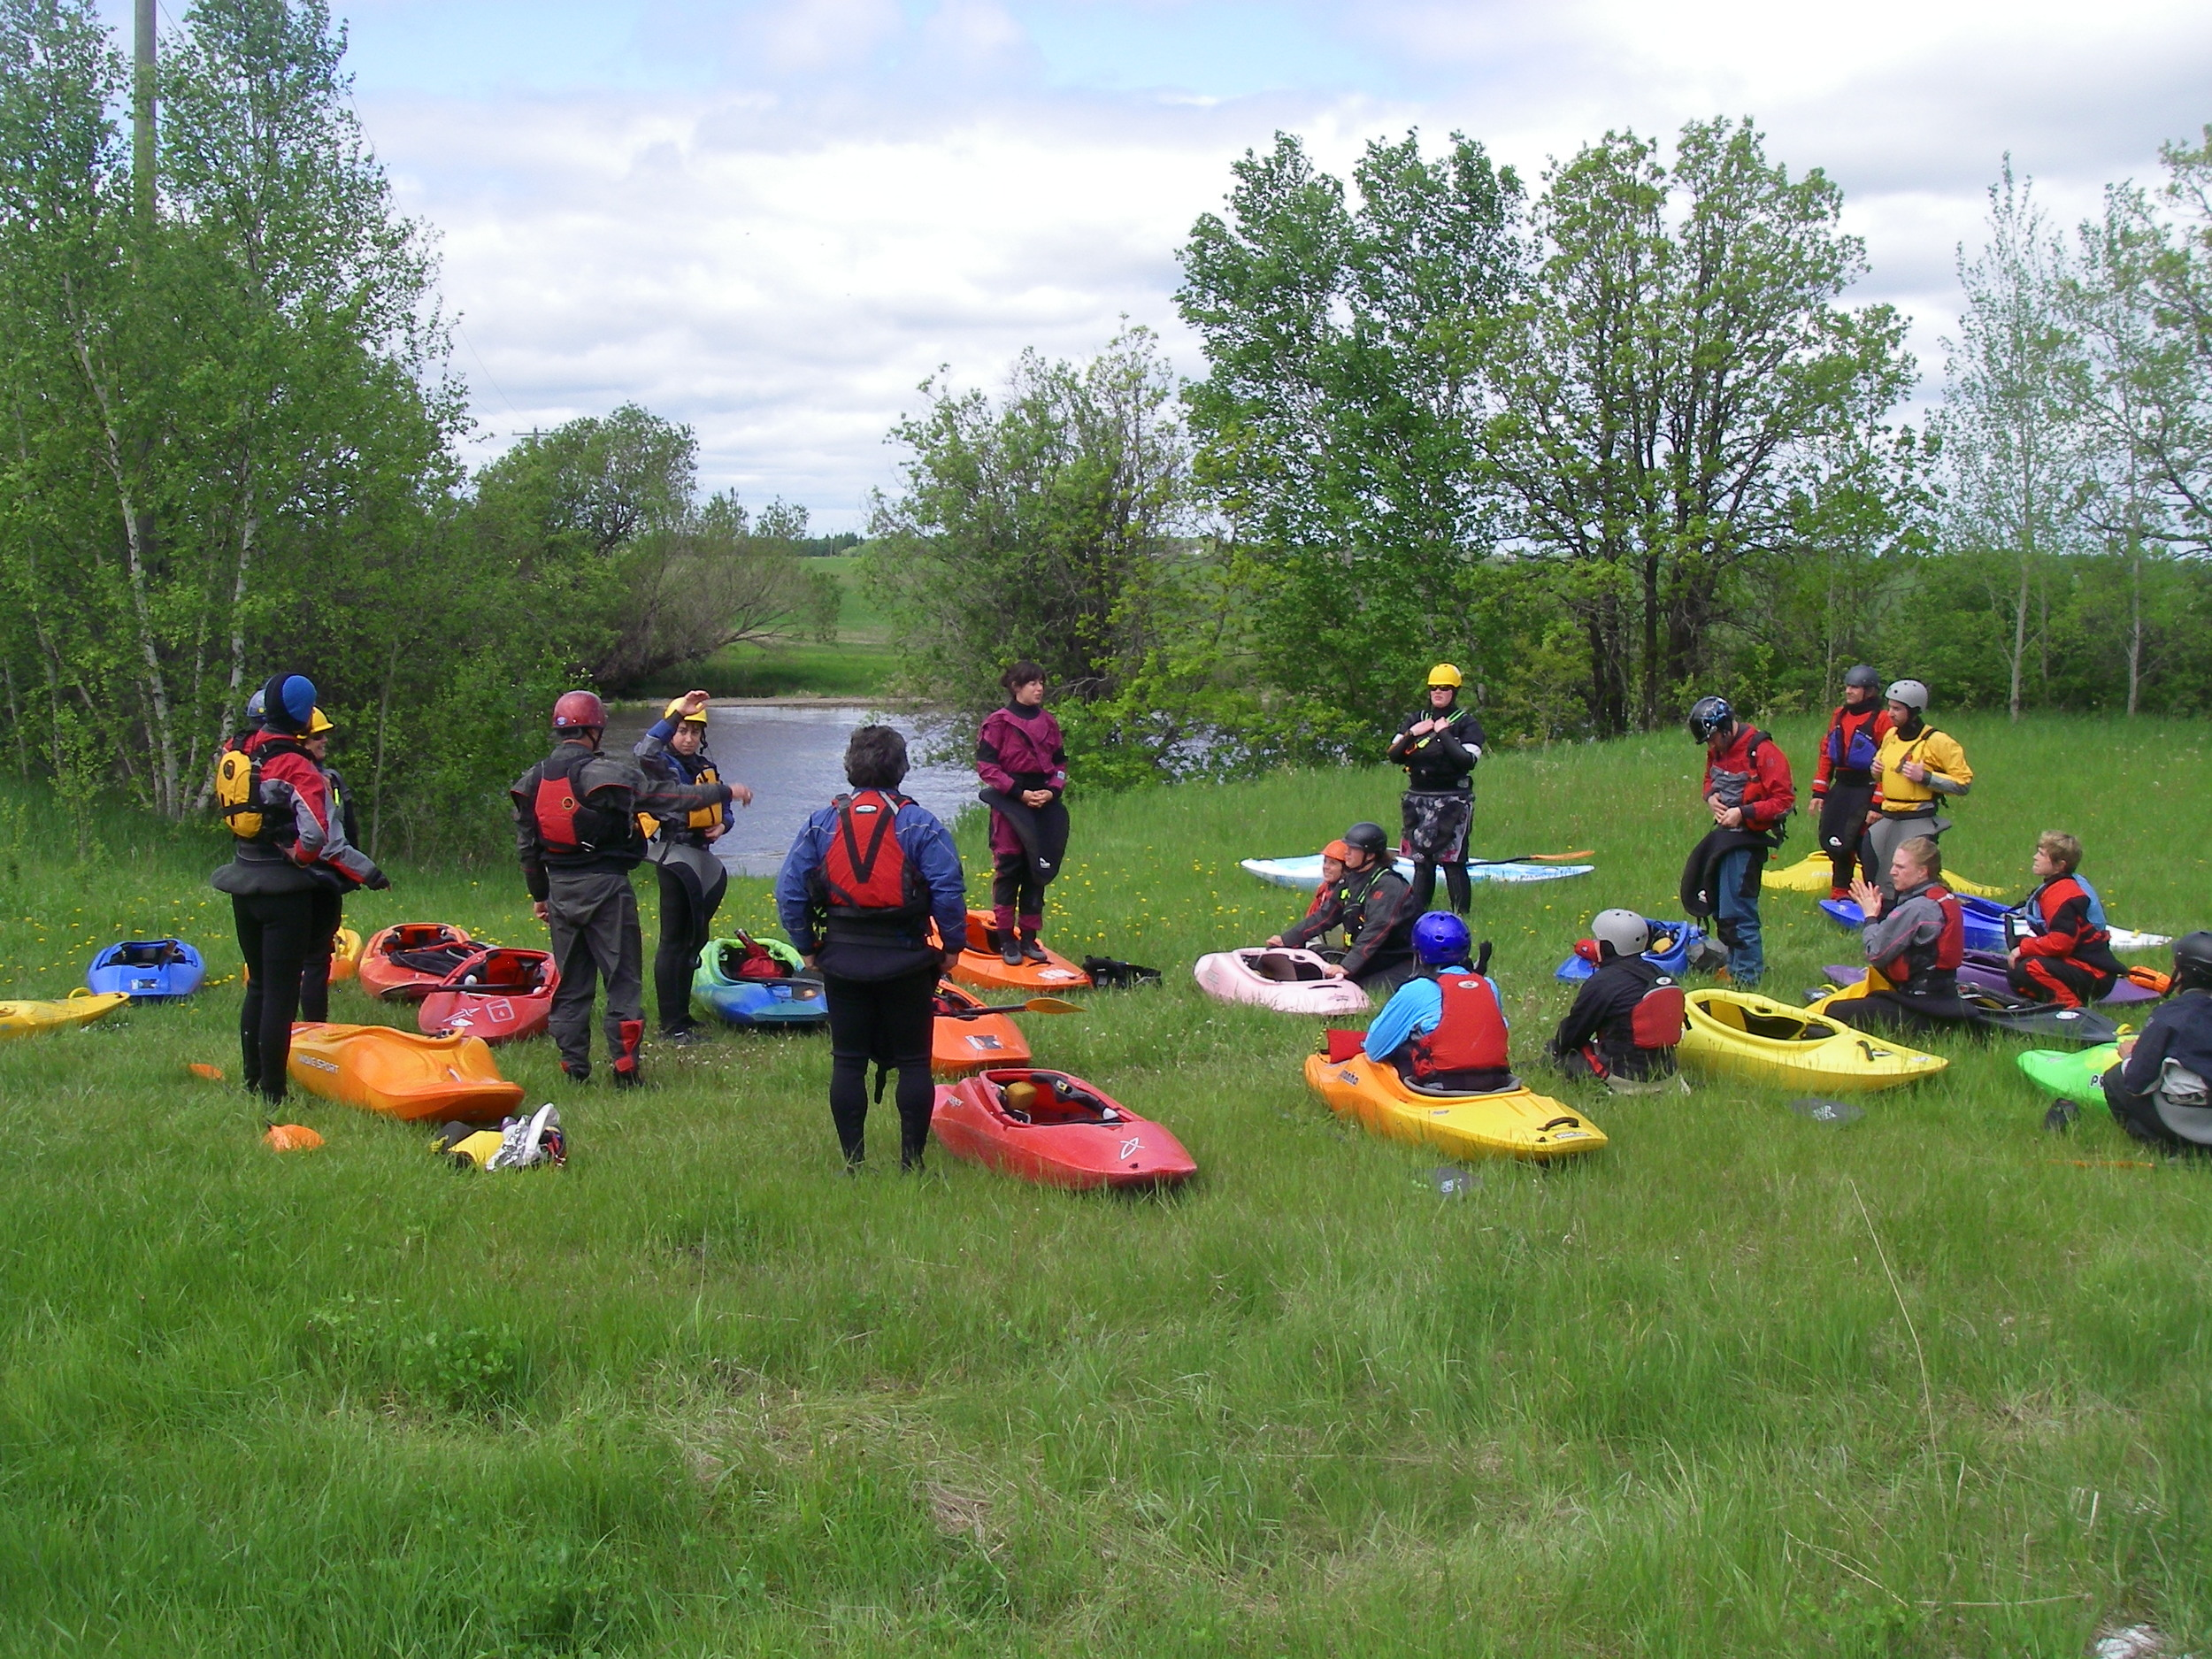 Getting ready for the river run above Farmers